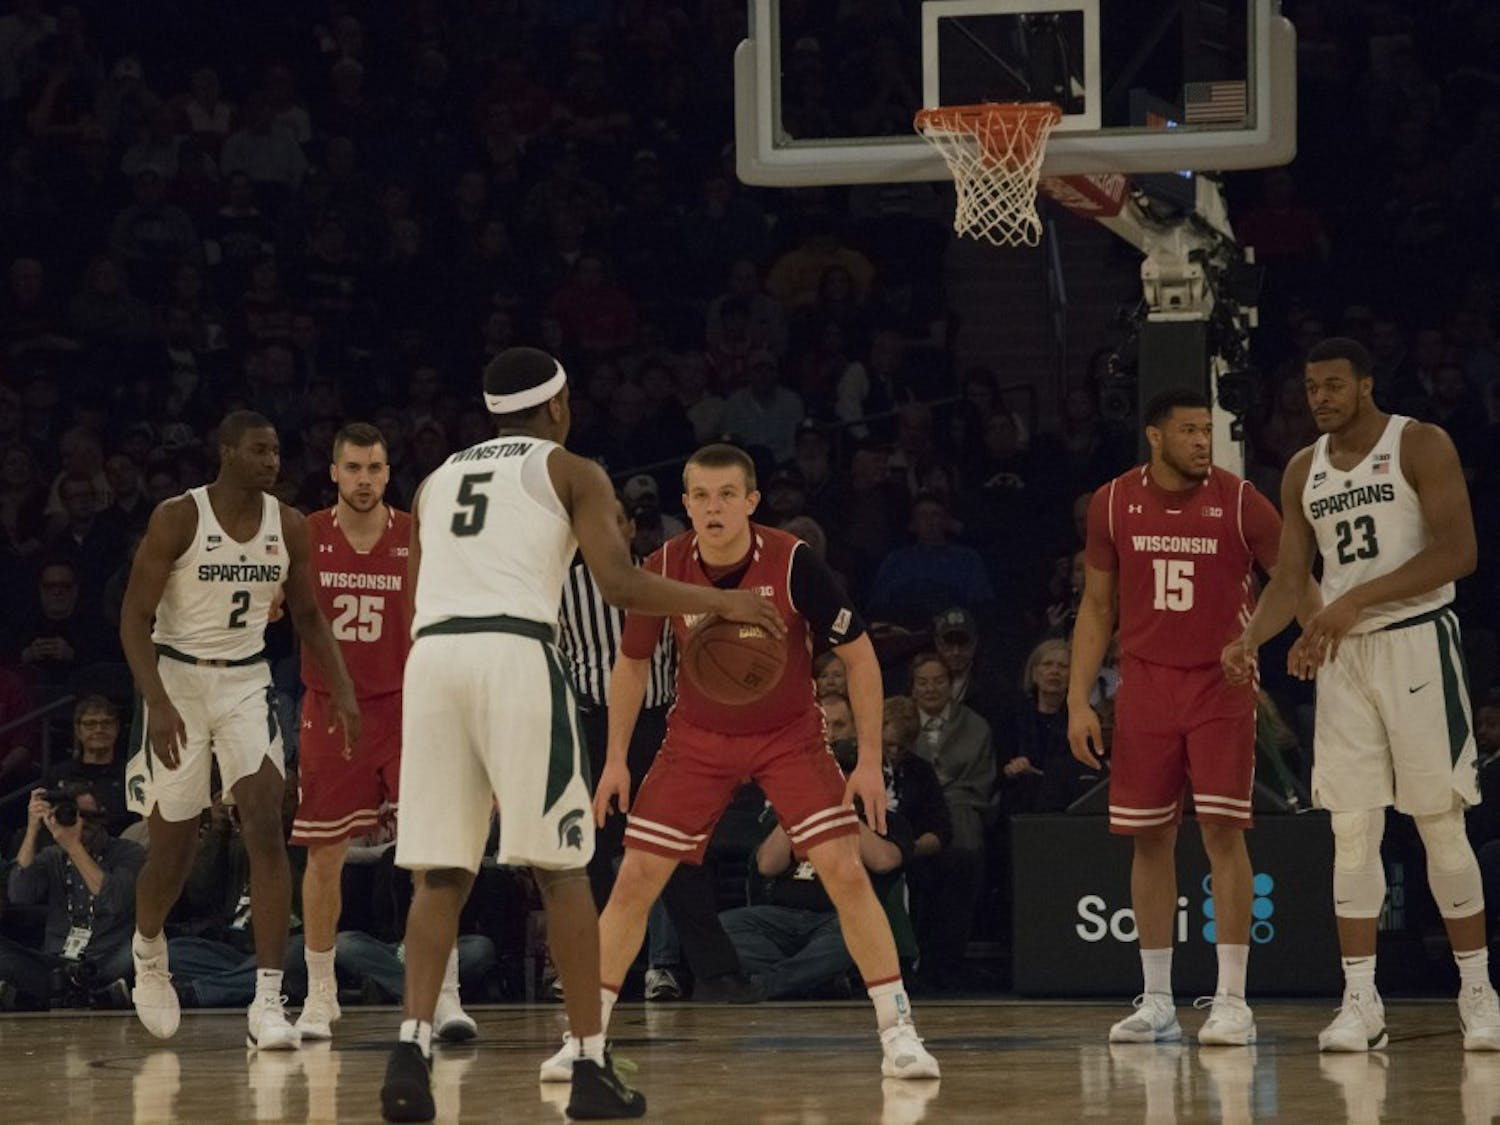 Freshman guard Brad Davison shot just 4-of-14 from the field as his phenomenal freshman season came to an end in a 60-63 loss to No. 1-seed Michigan State in the Big Ten Tournament.